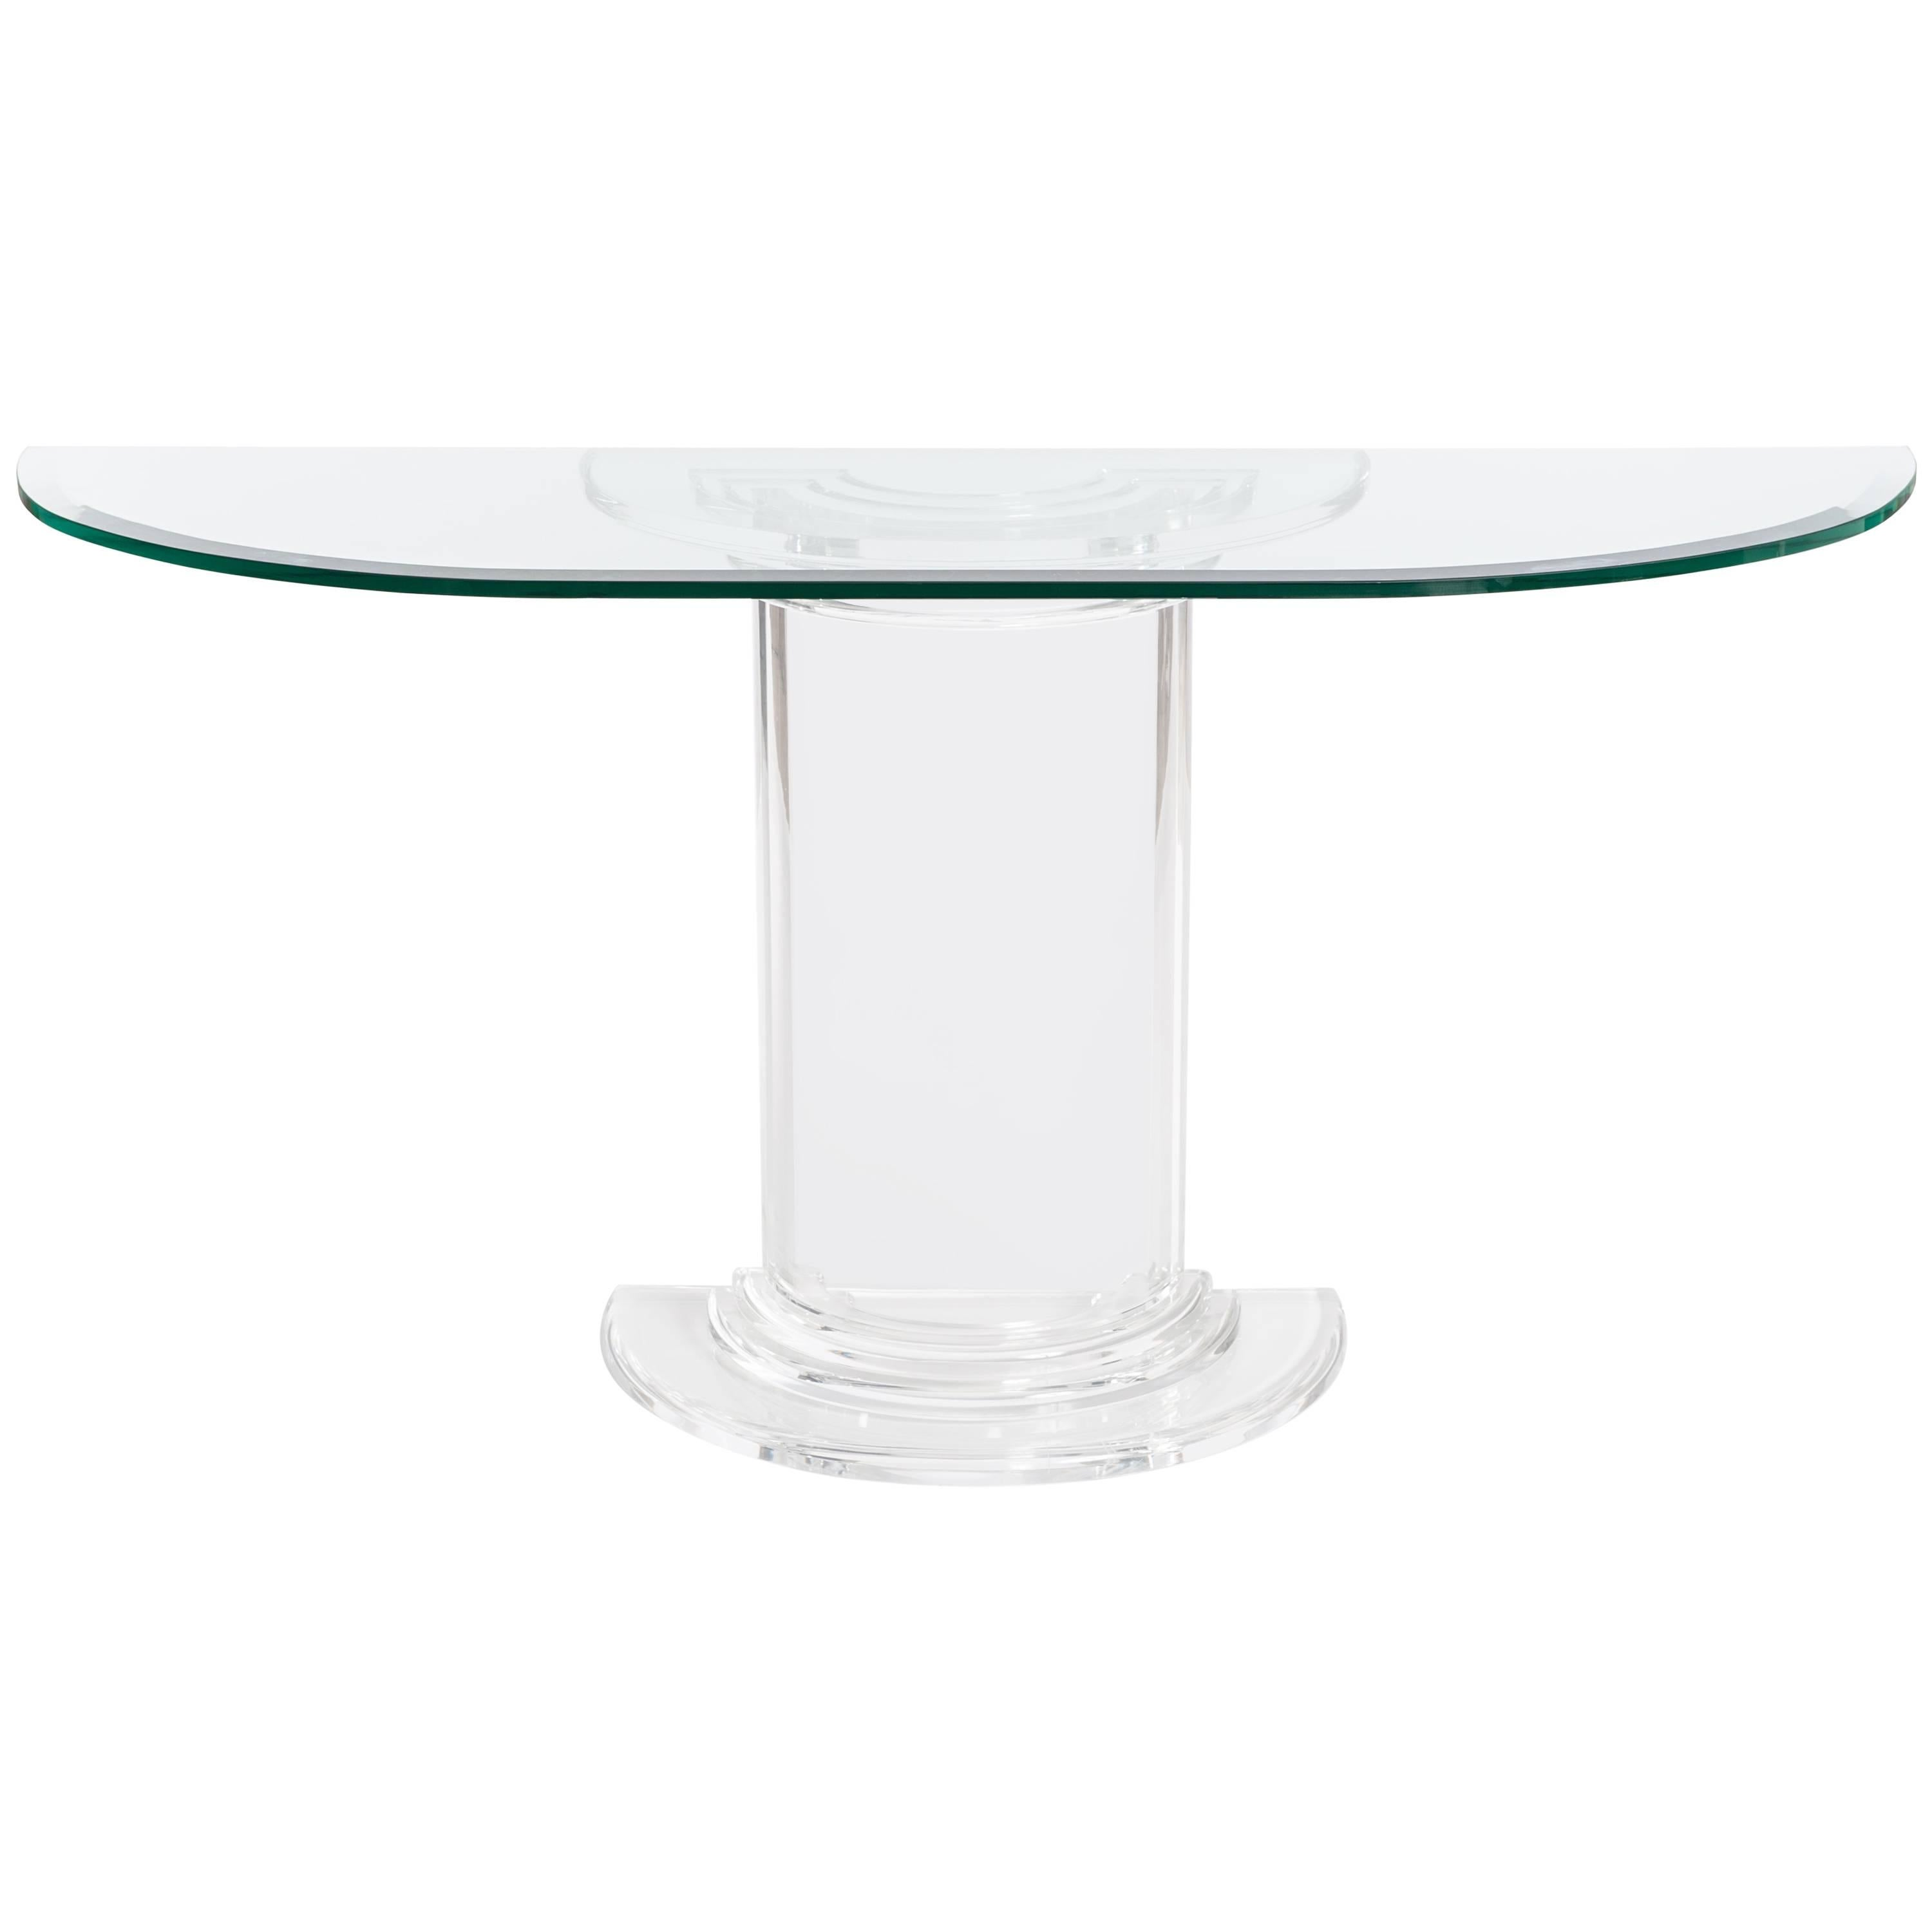 Midcentury Italian Plexiglass Console Table With Crystal Glass Table Top  For Sale